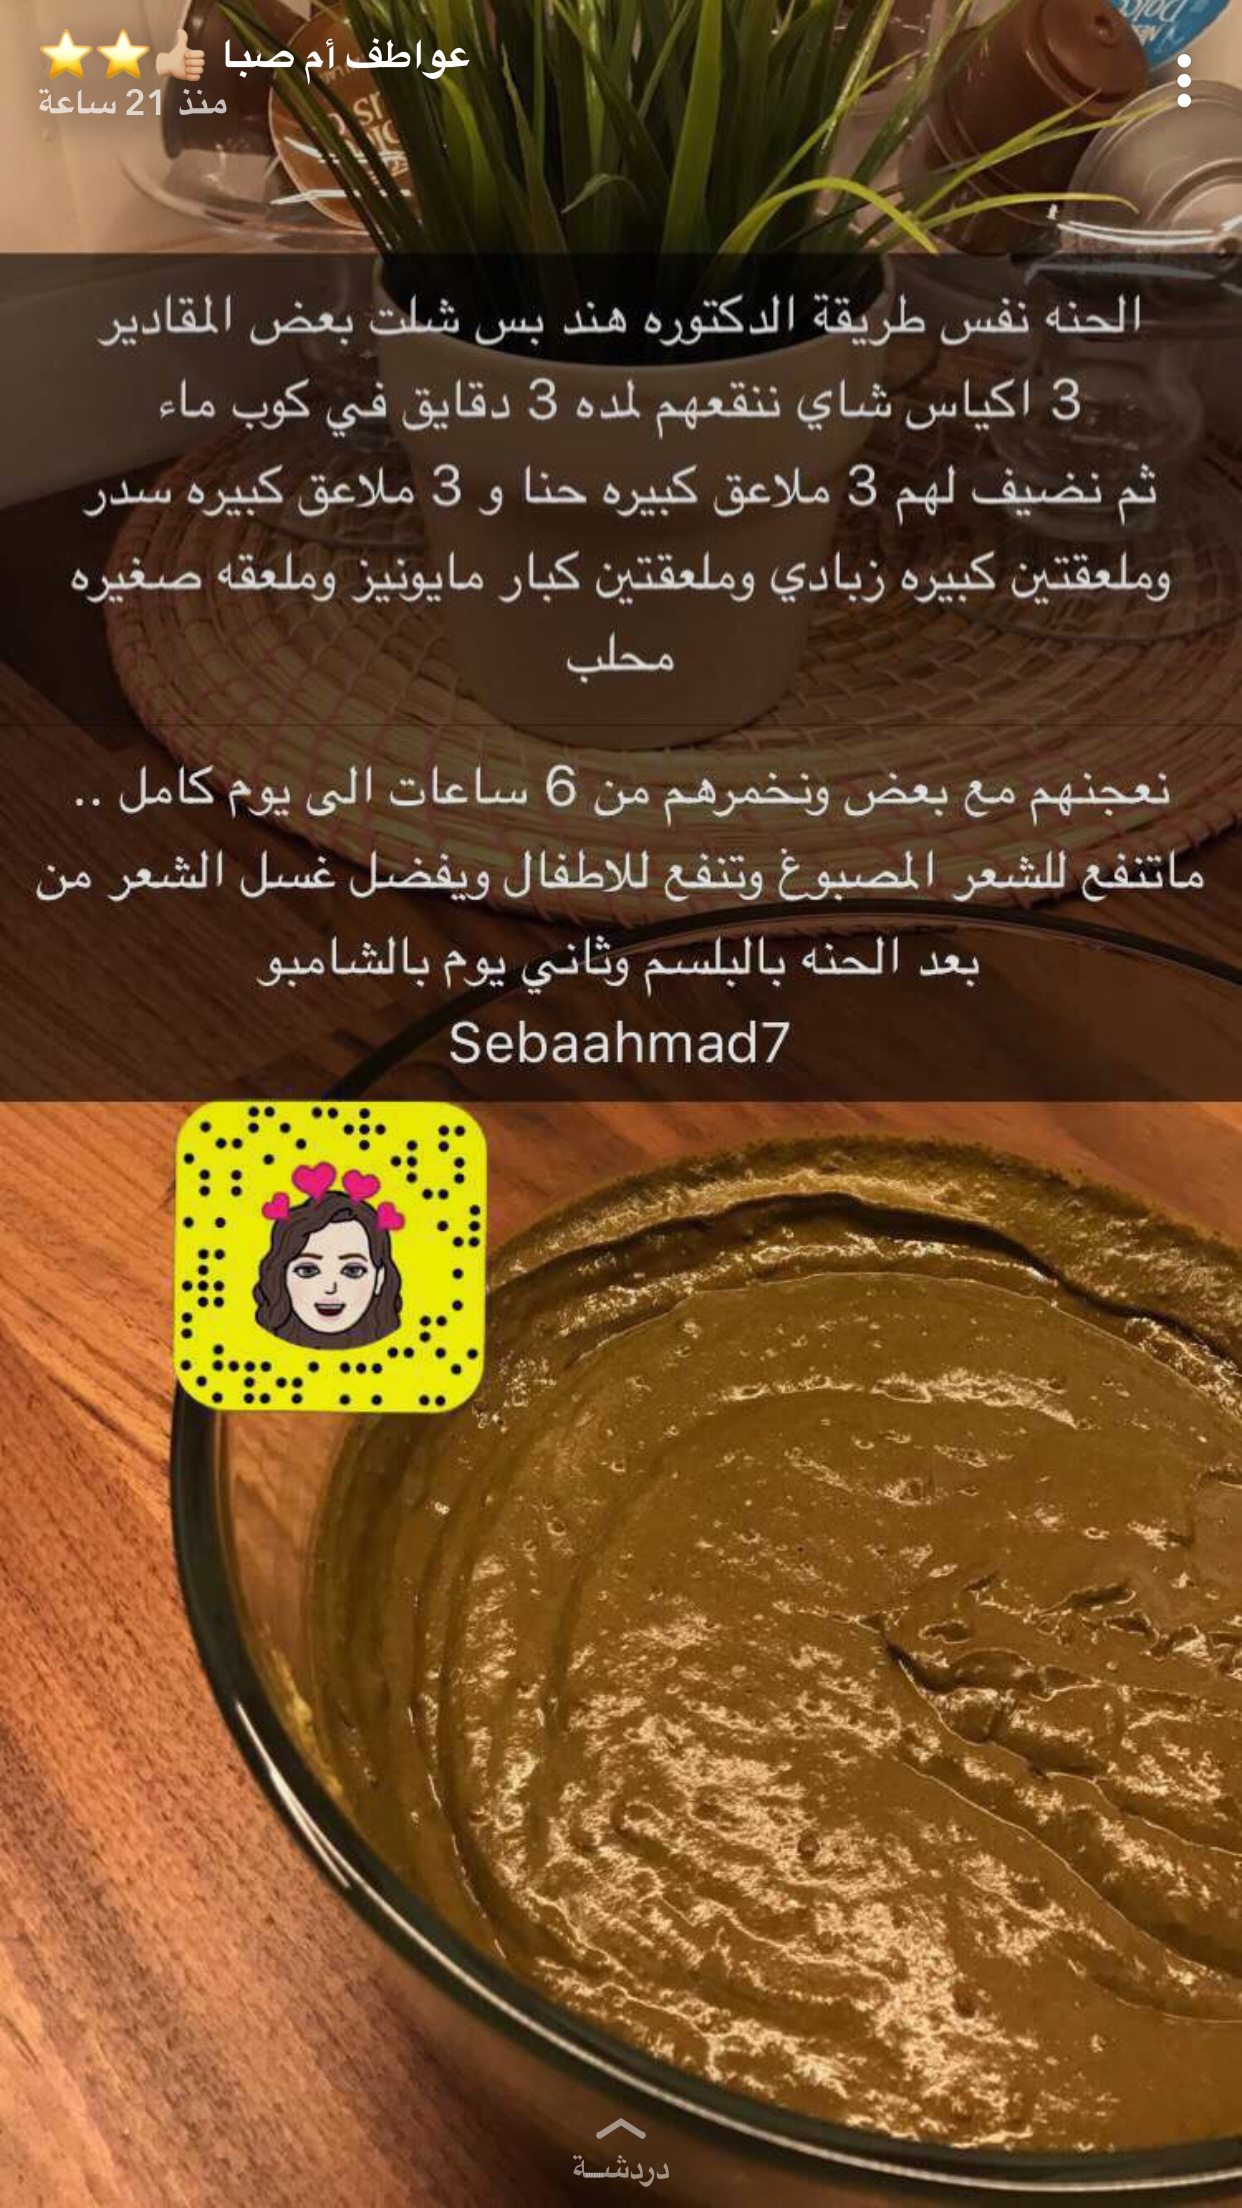 Pin By Mesho A On ٠١٩٢٨ Hair Care Recipes Hair Care Oils Beauty Recipes Hair